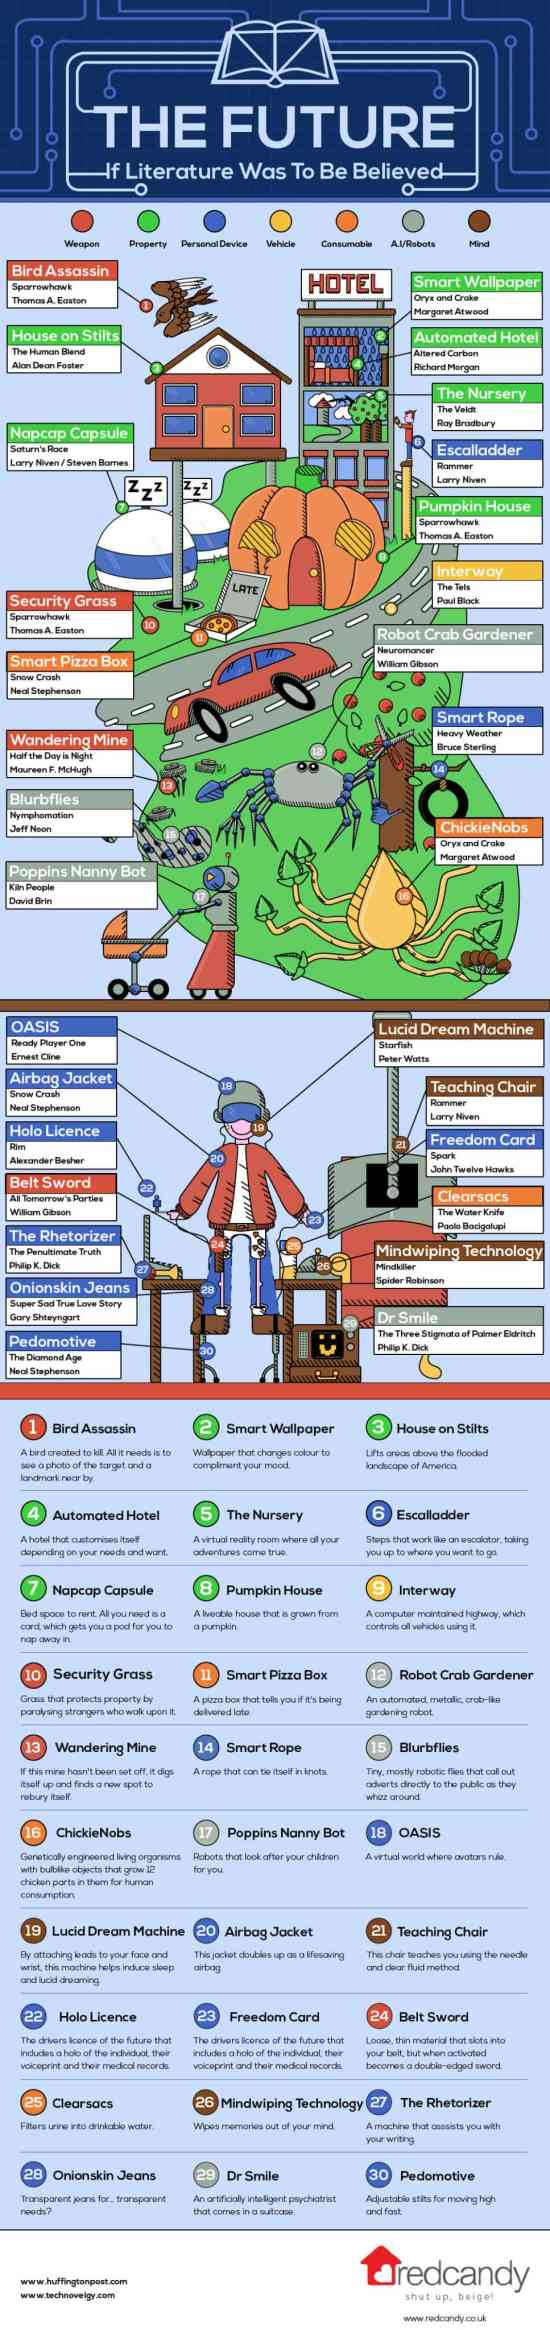 Infographic: The Future, According to Literature Infographic